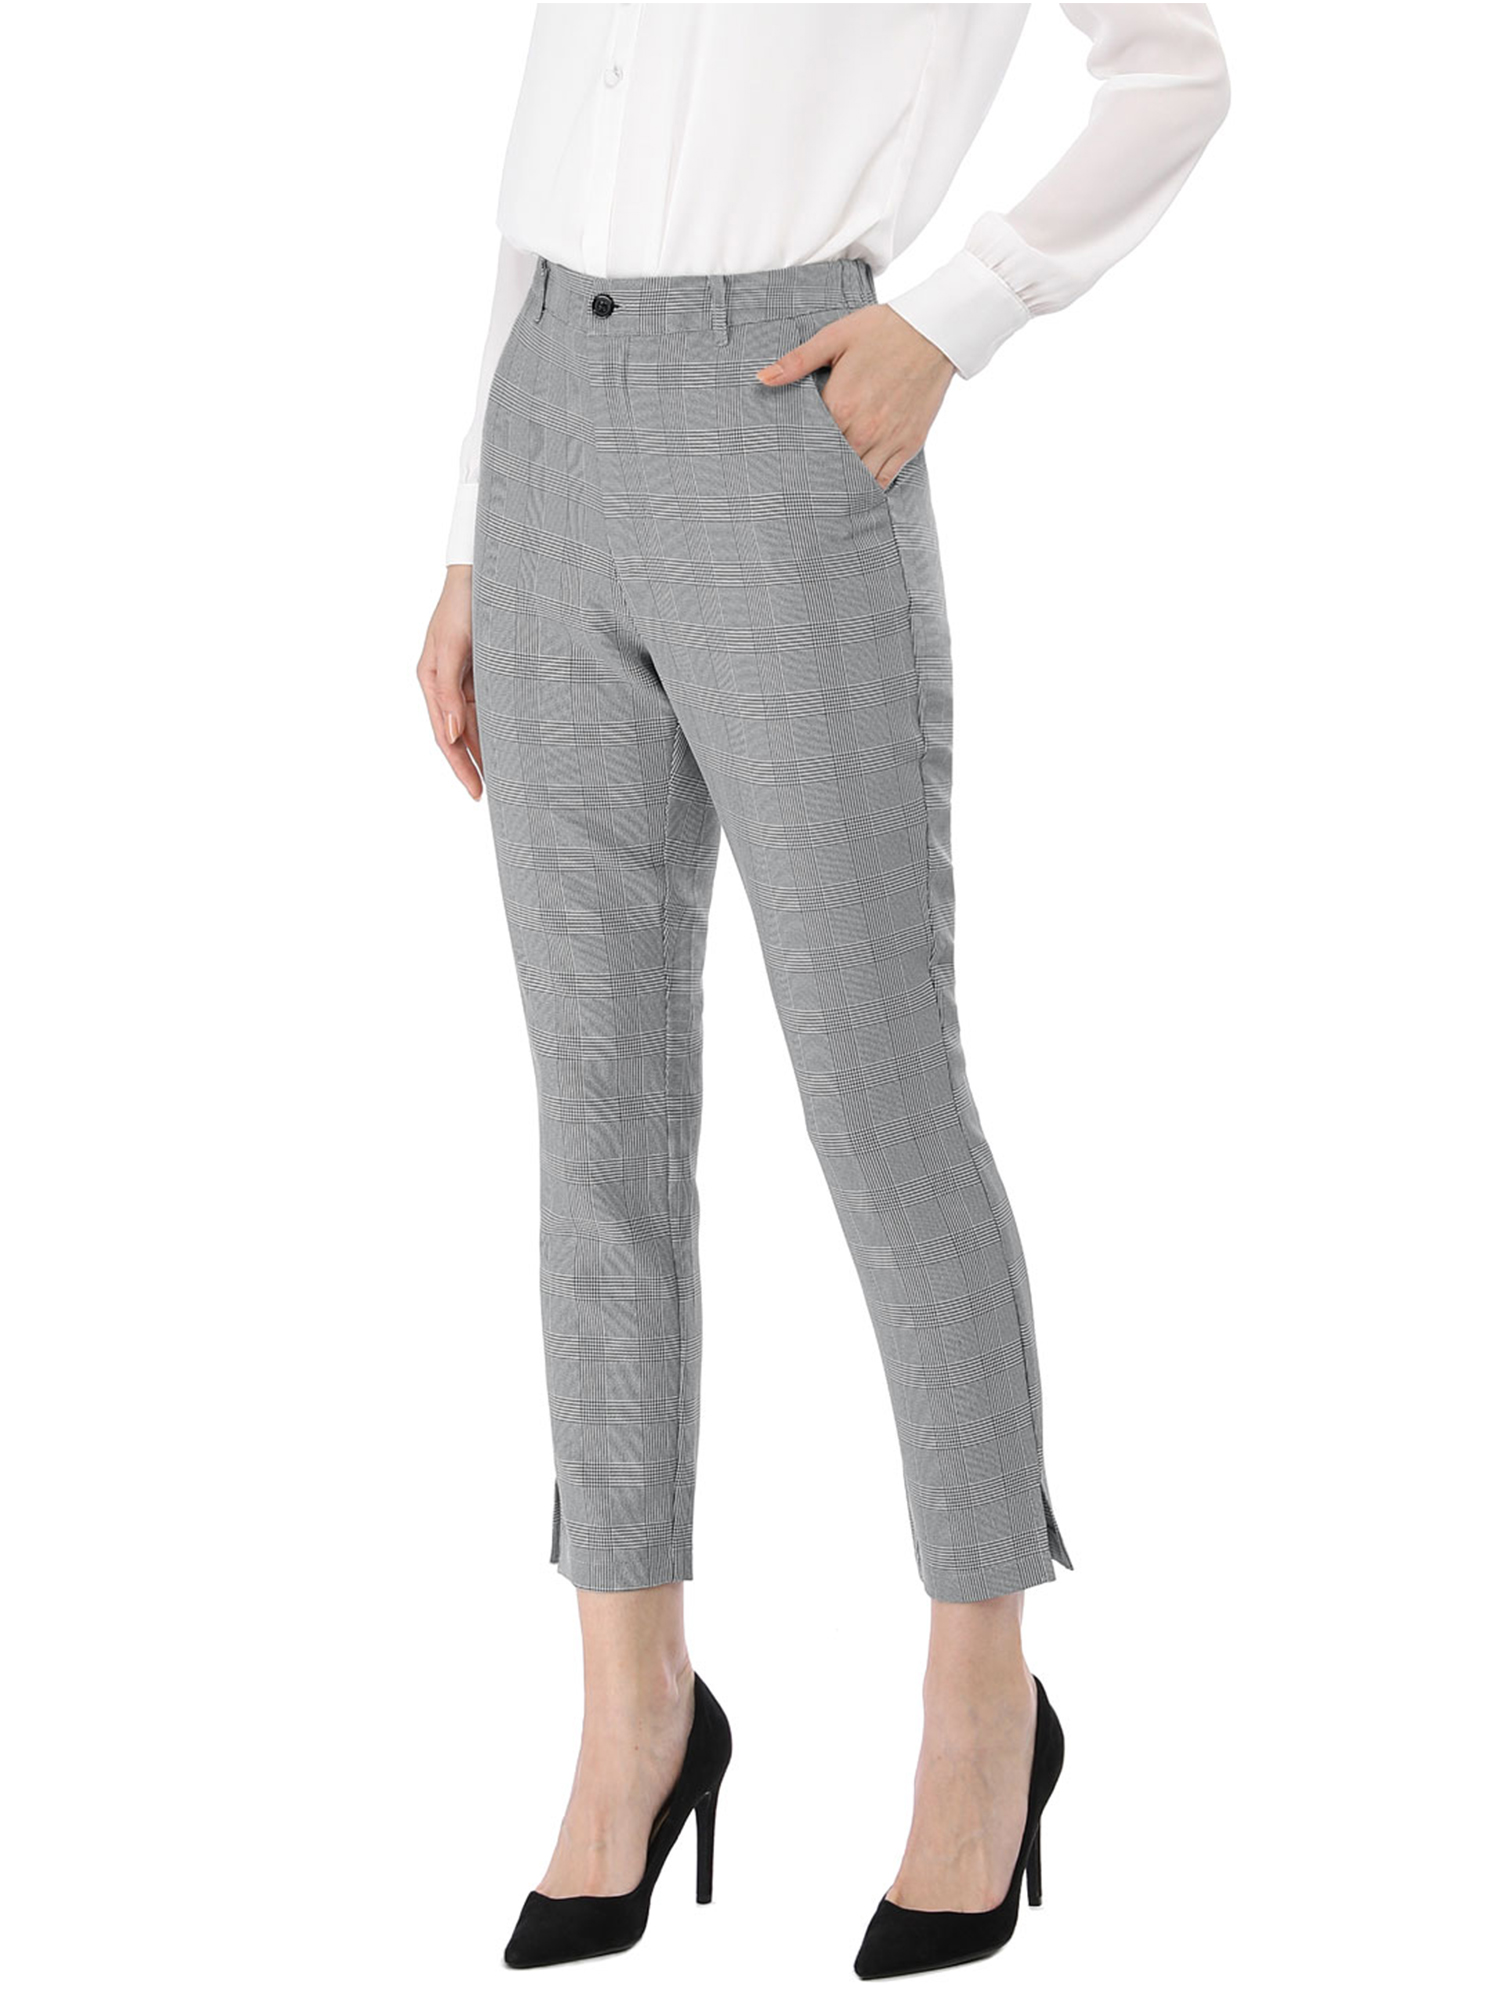 Unique Bargains Women's High Waisted Office Work Casual Ankle Plaid Pants (Size S / 6) Black